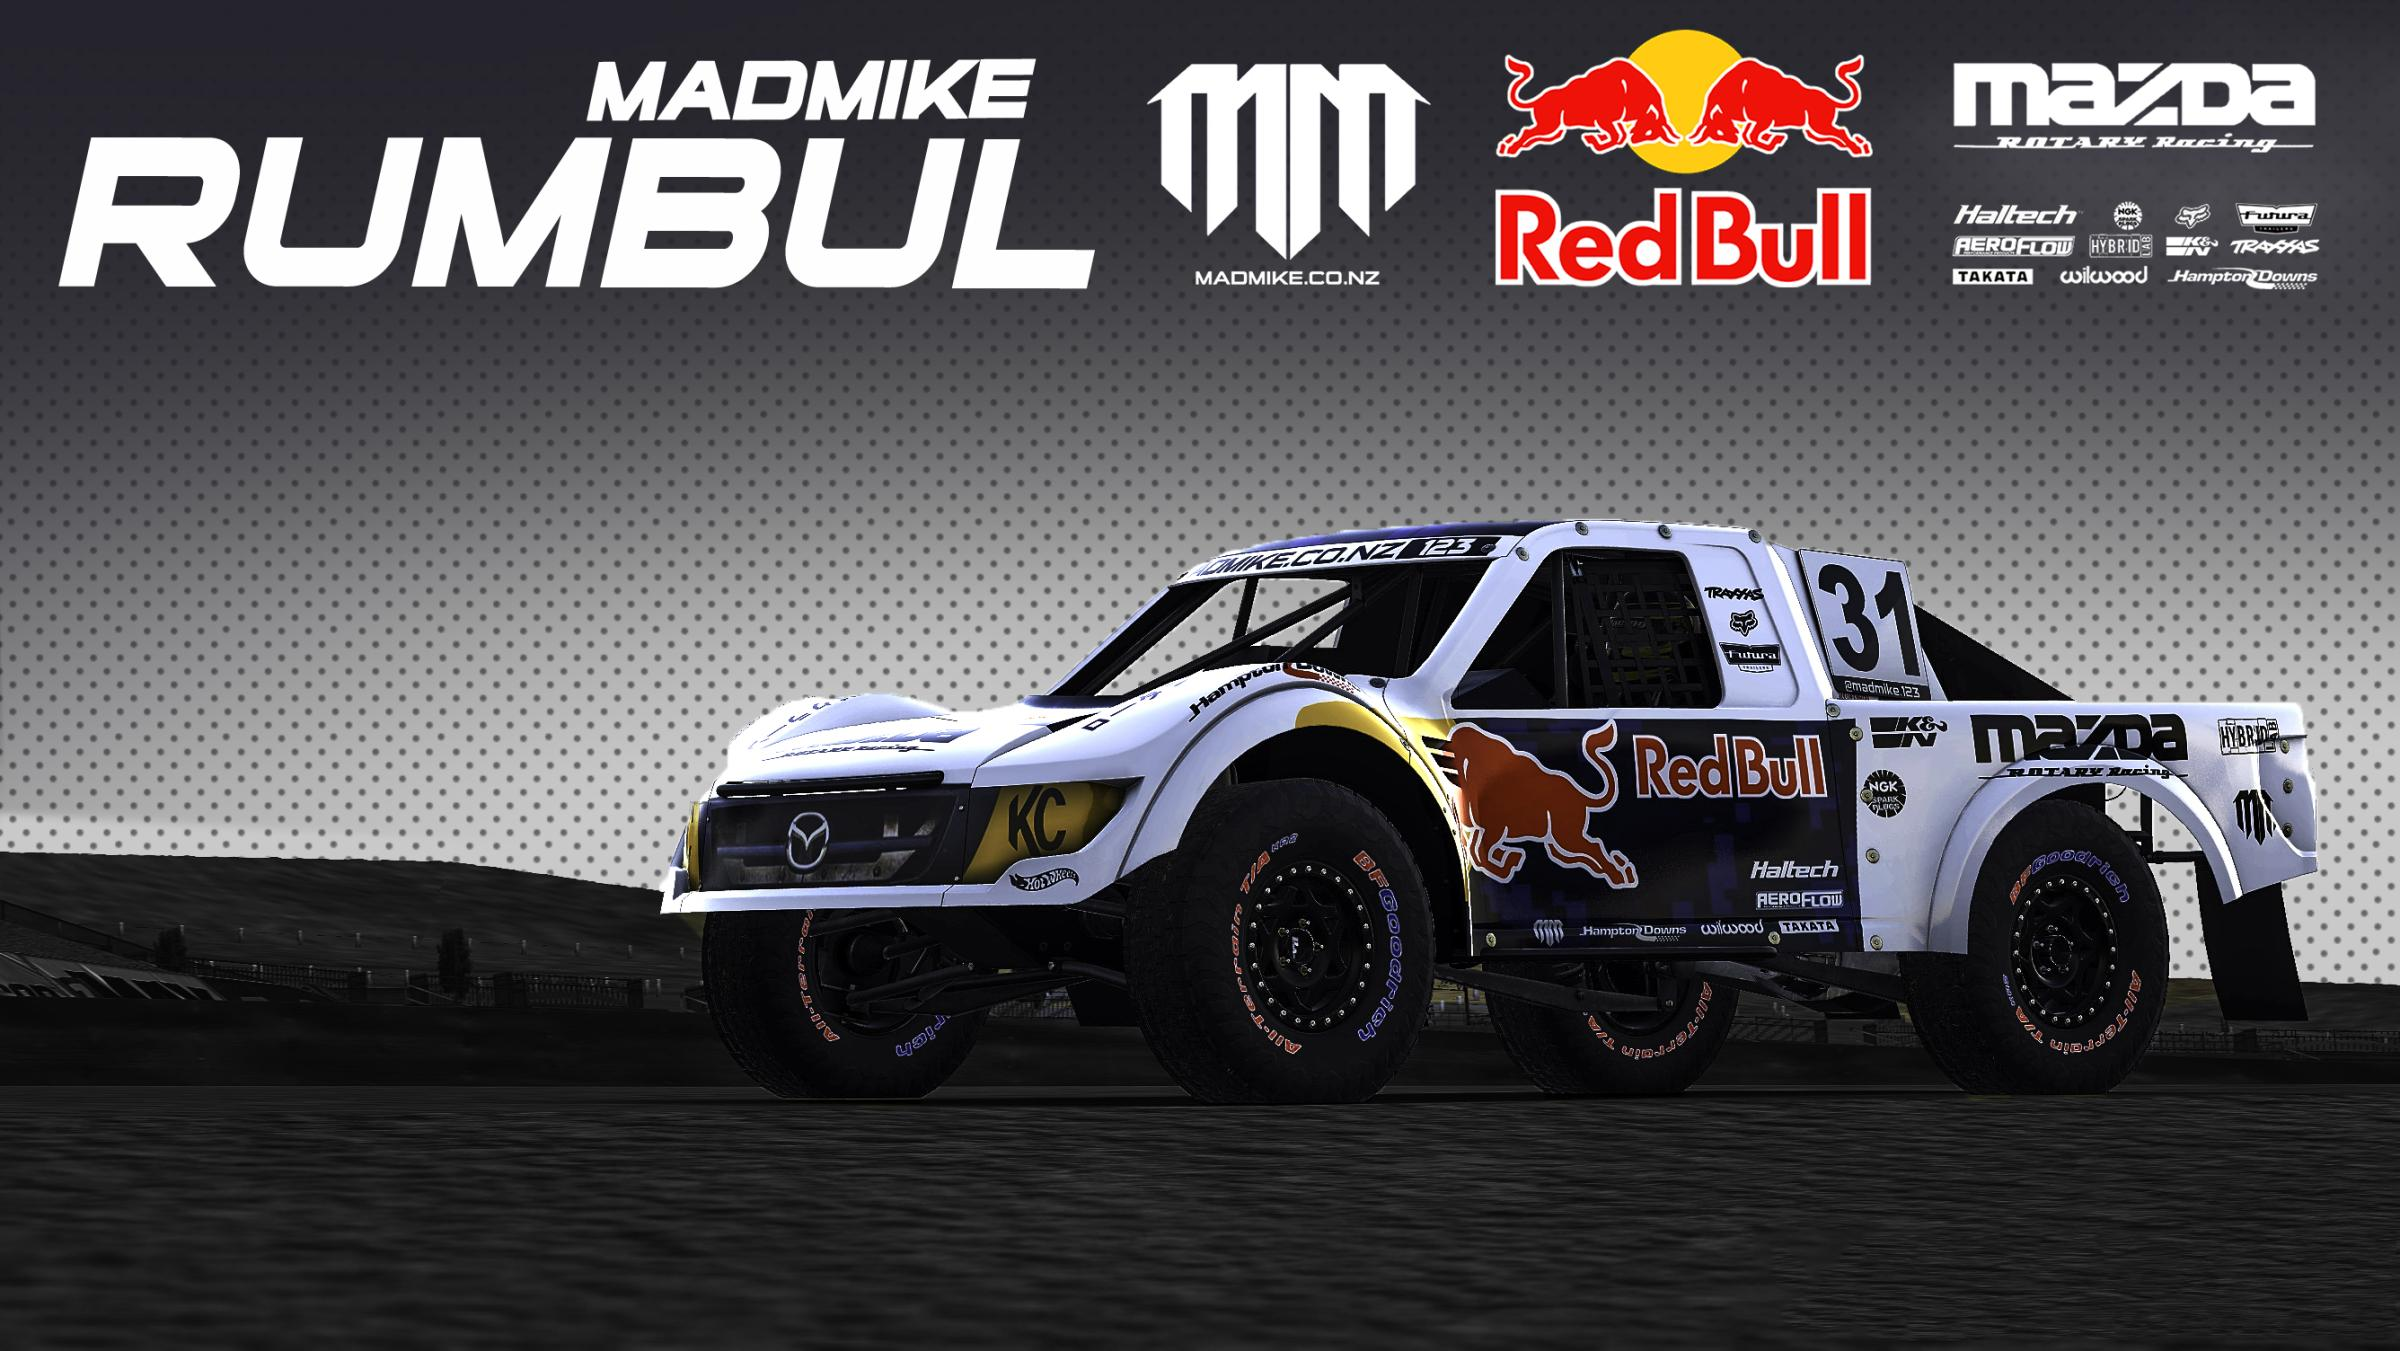 Preview of MadMike123 RUMBUL Pro4 Truck (White) by Yuji Asakawa